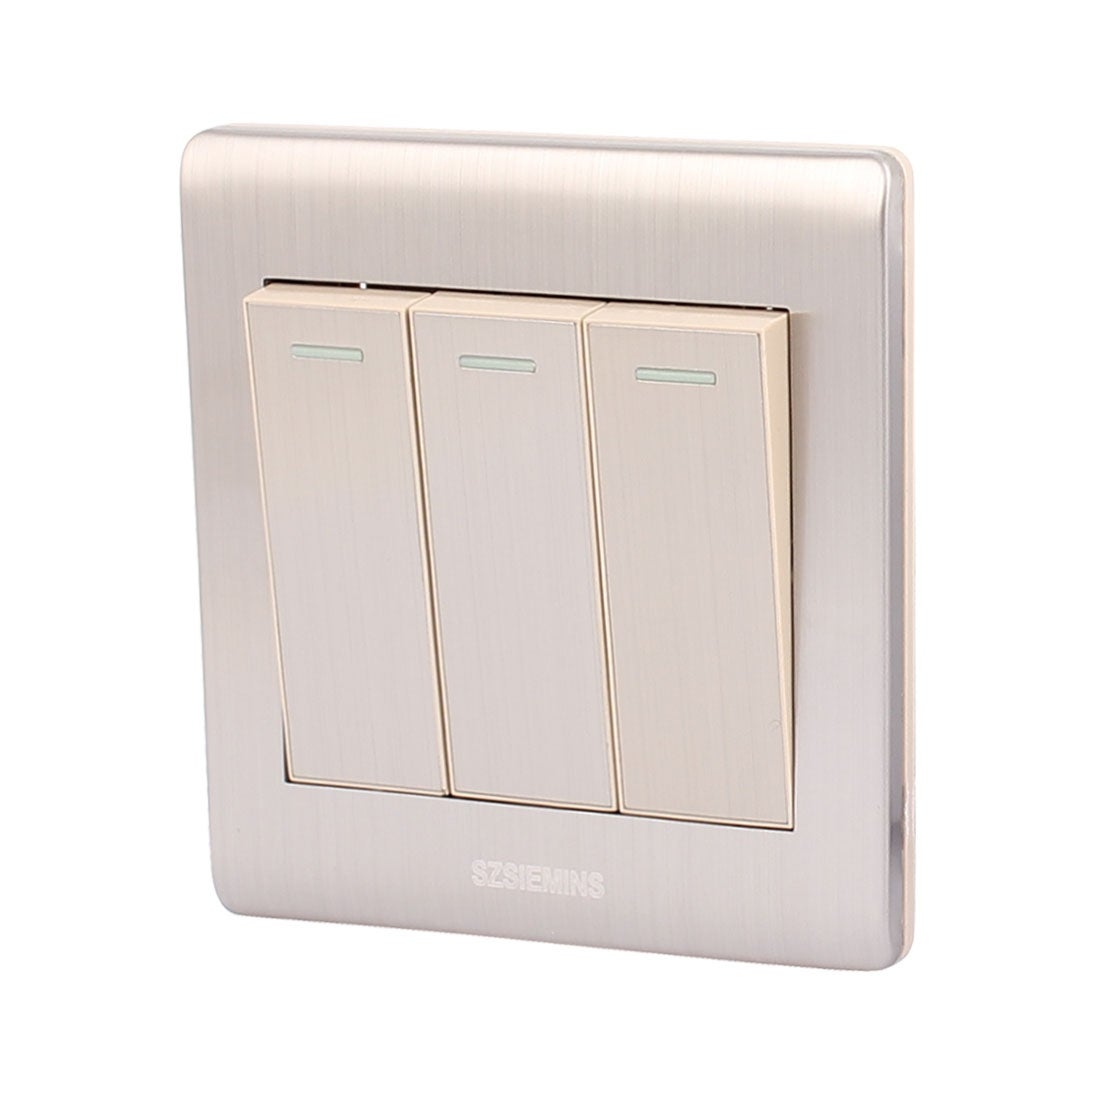 Shop Ac 250v 10a 3 Gang 2 Way On Off Stainless Steel Modern Design Light Switch Plate Wall Ships To Canada 18262801